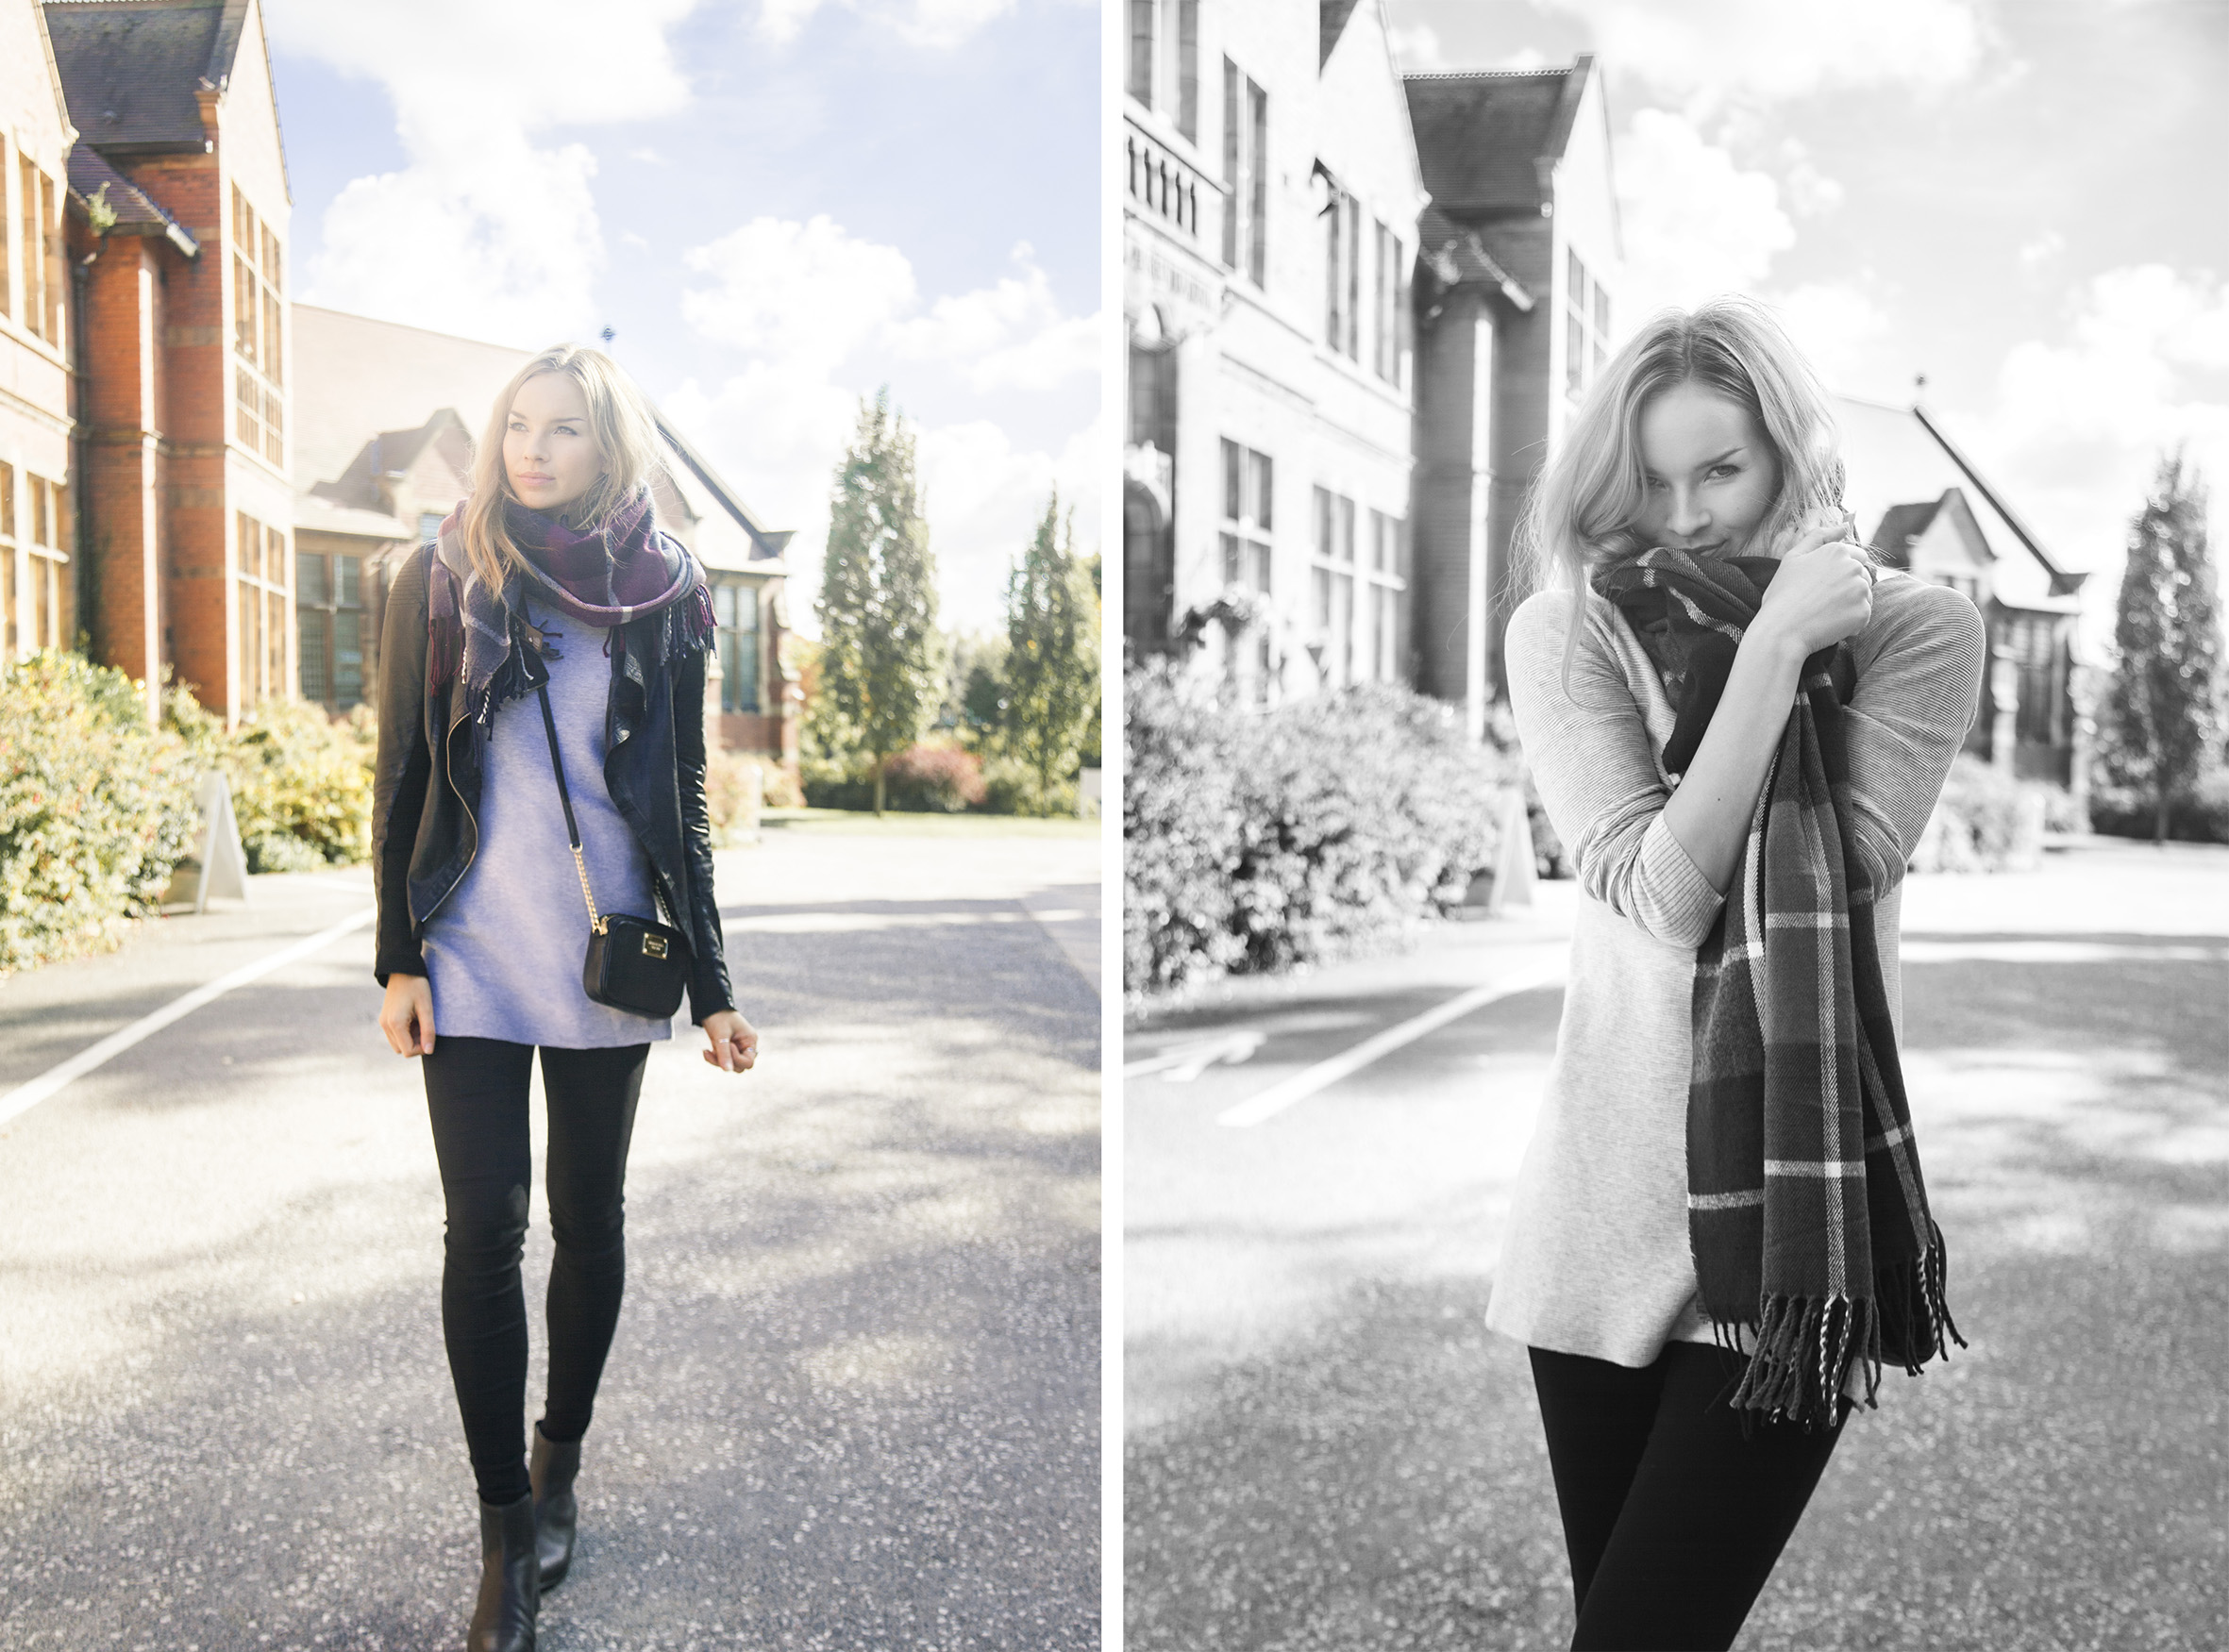 Casual styles in autumn by Vilma P.